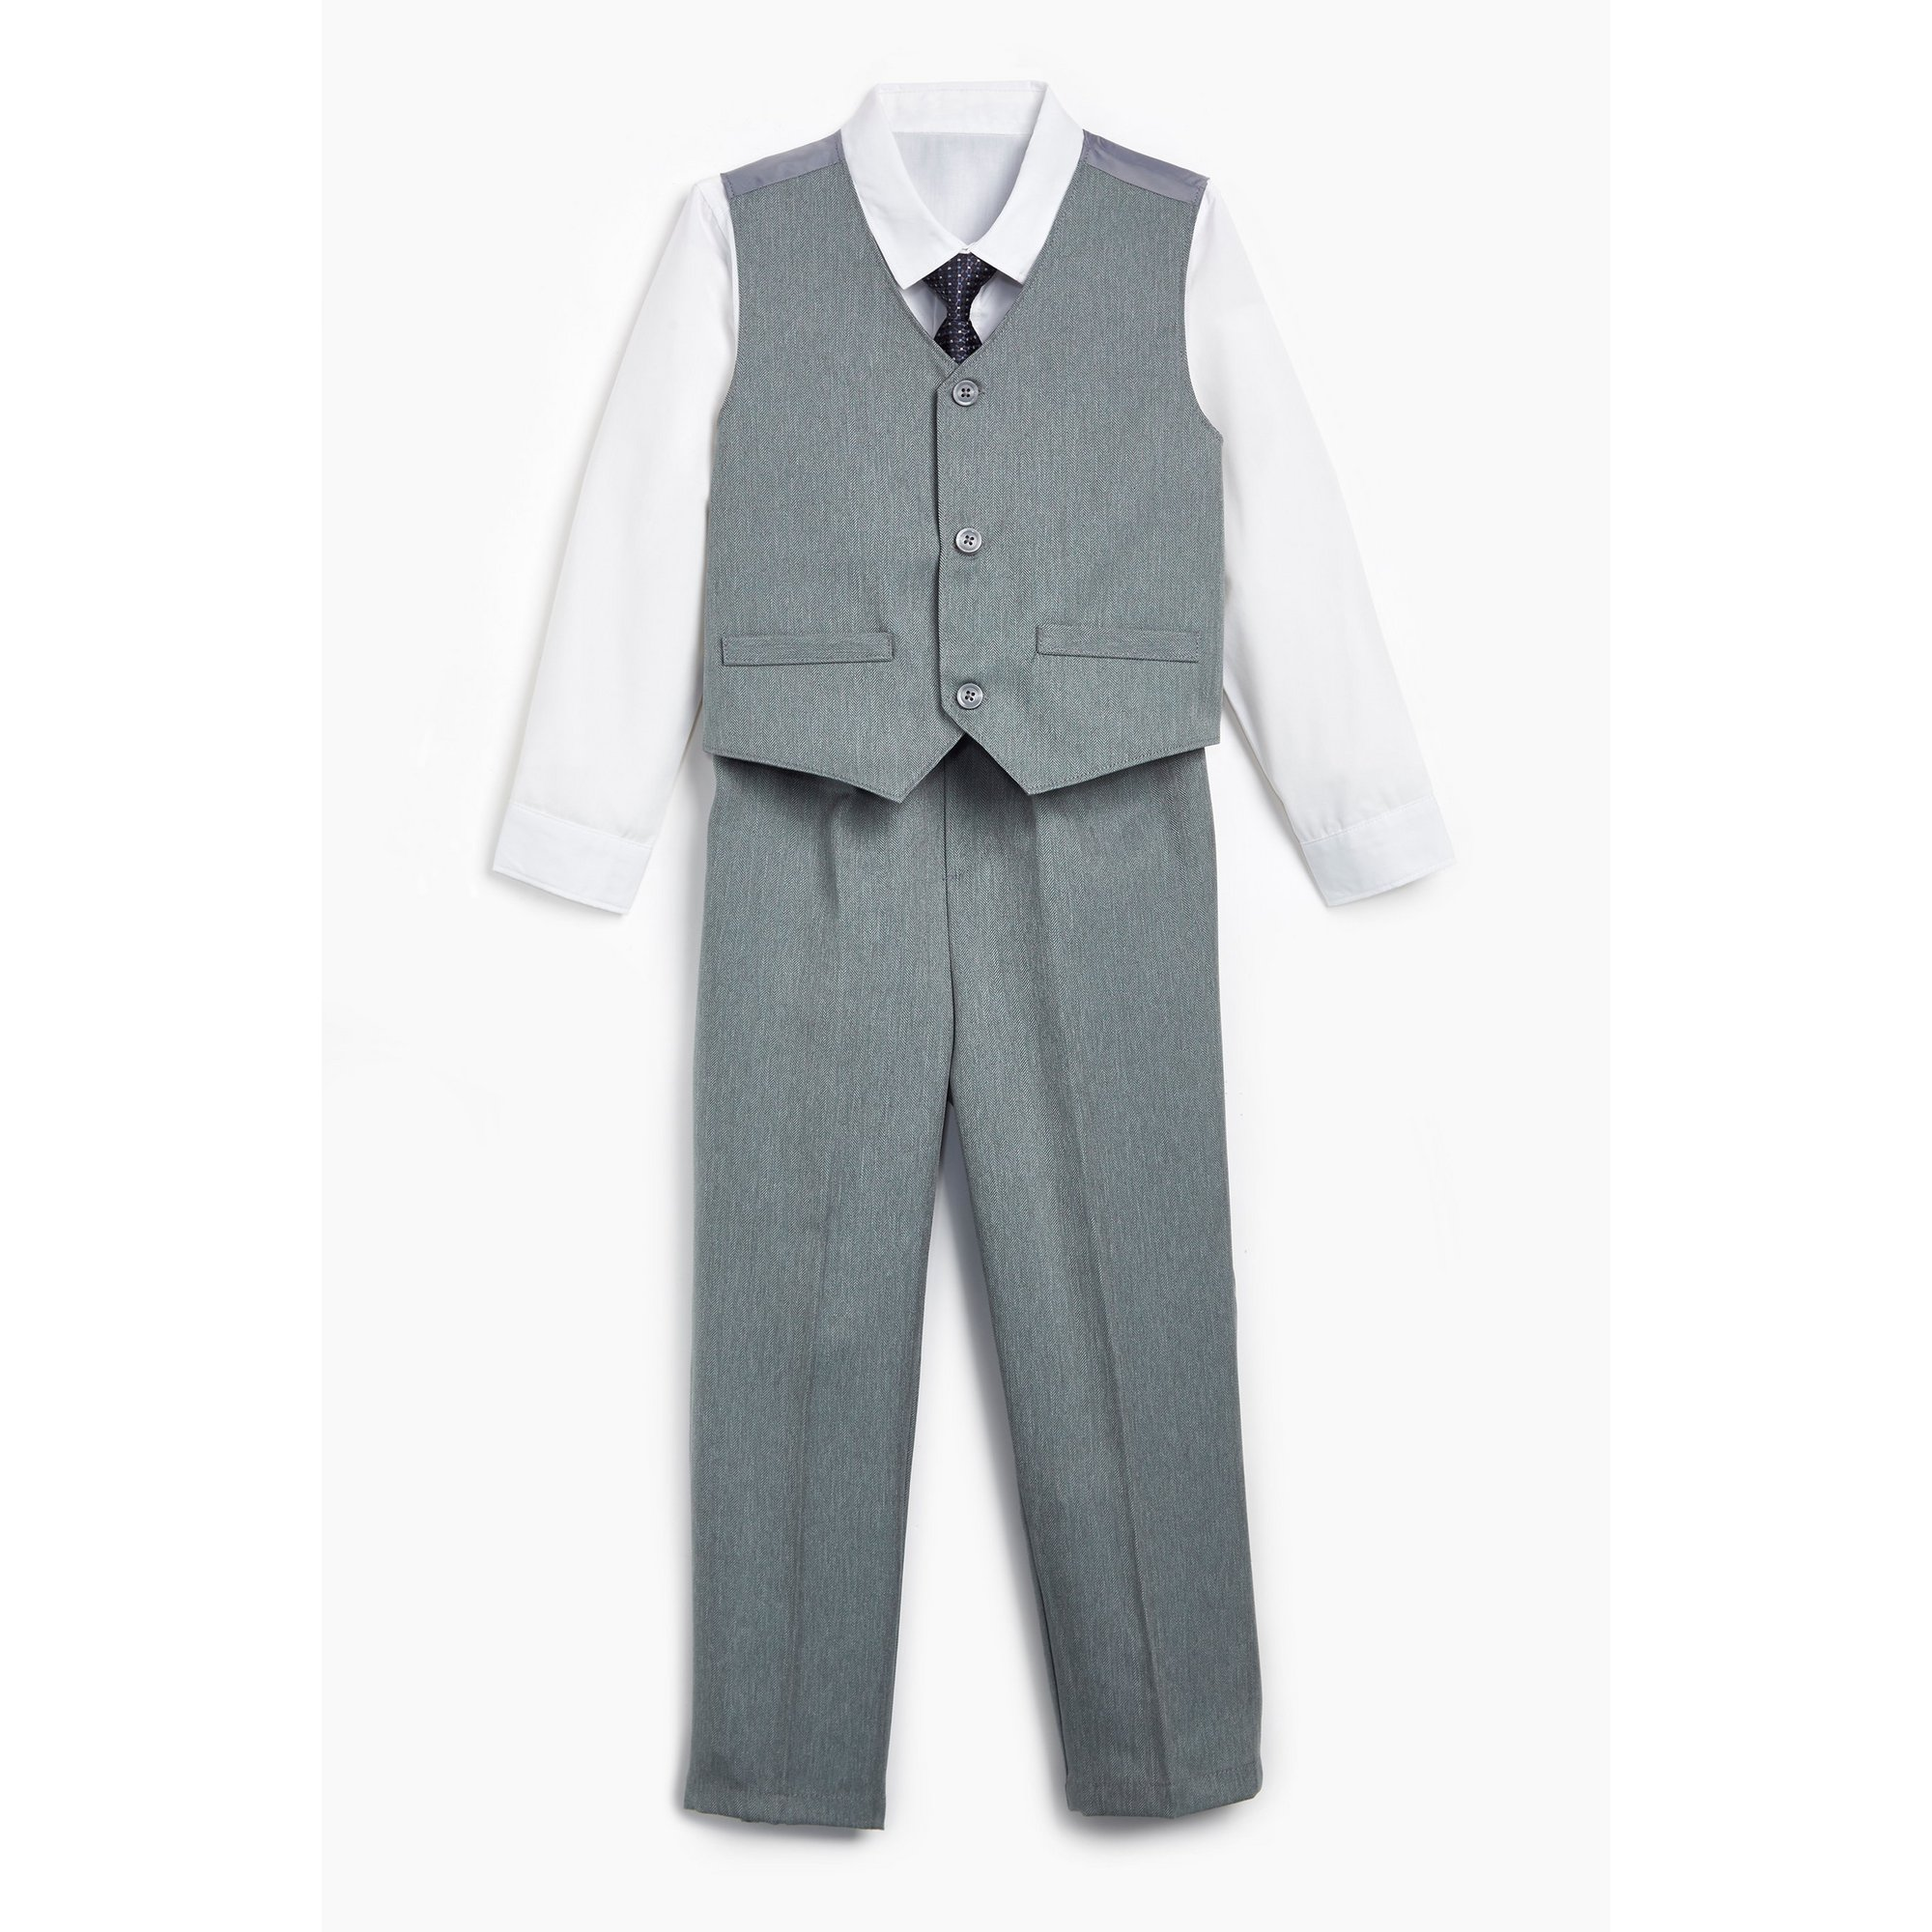 Image of Boys 4-Piece Grey Occasion Suit with Shirt and Tie